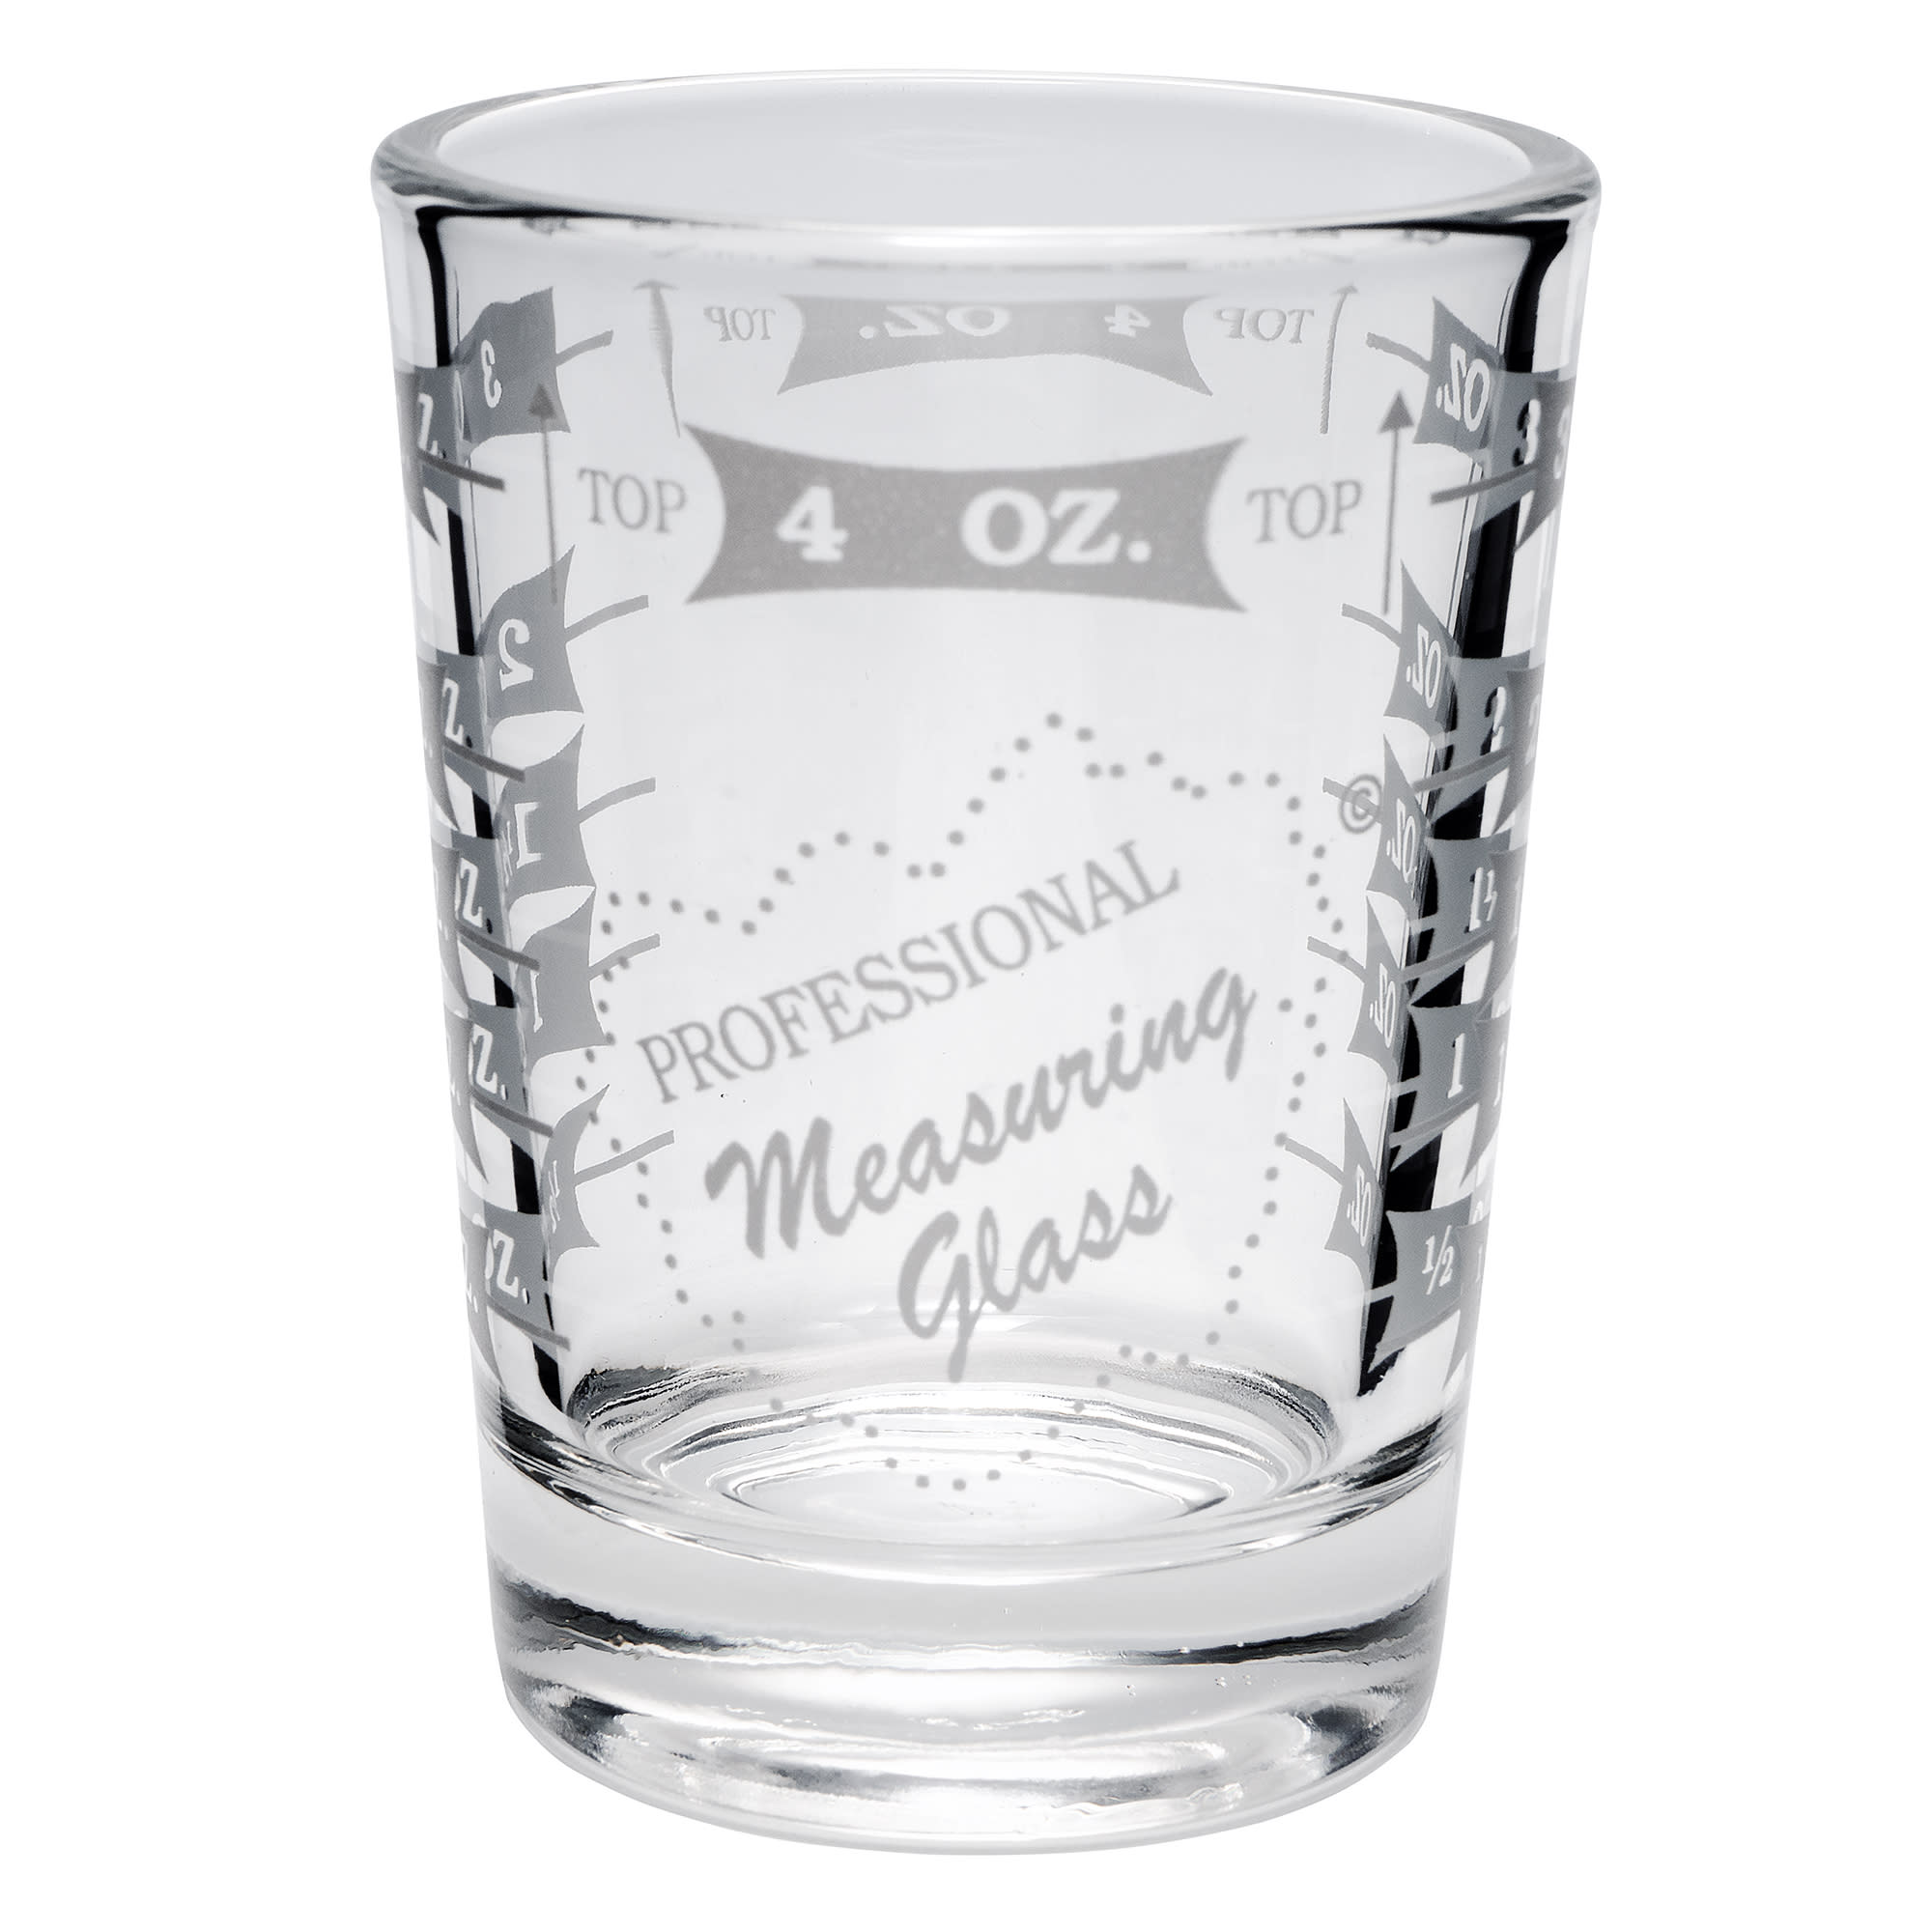 Libbey 5134/1124N 4-oz Mixing Glass - Capacity Markings on Both Sides